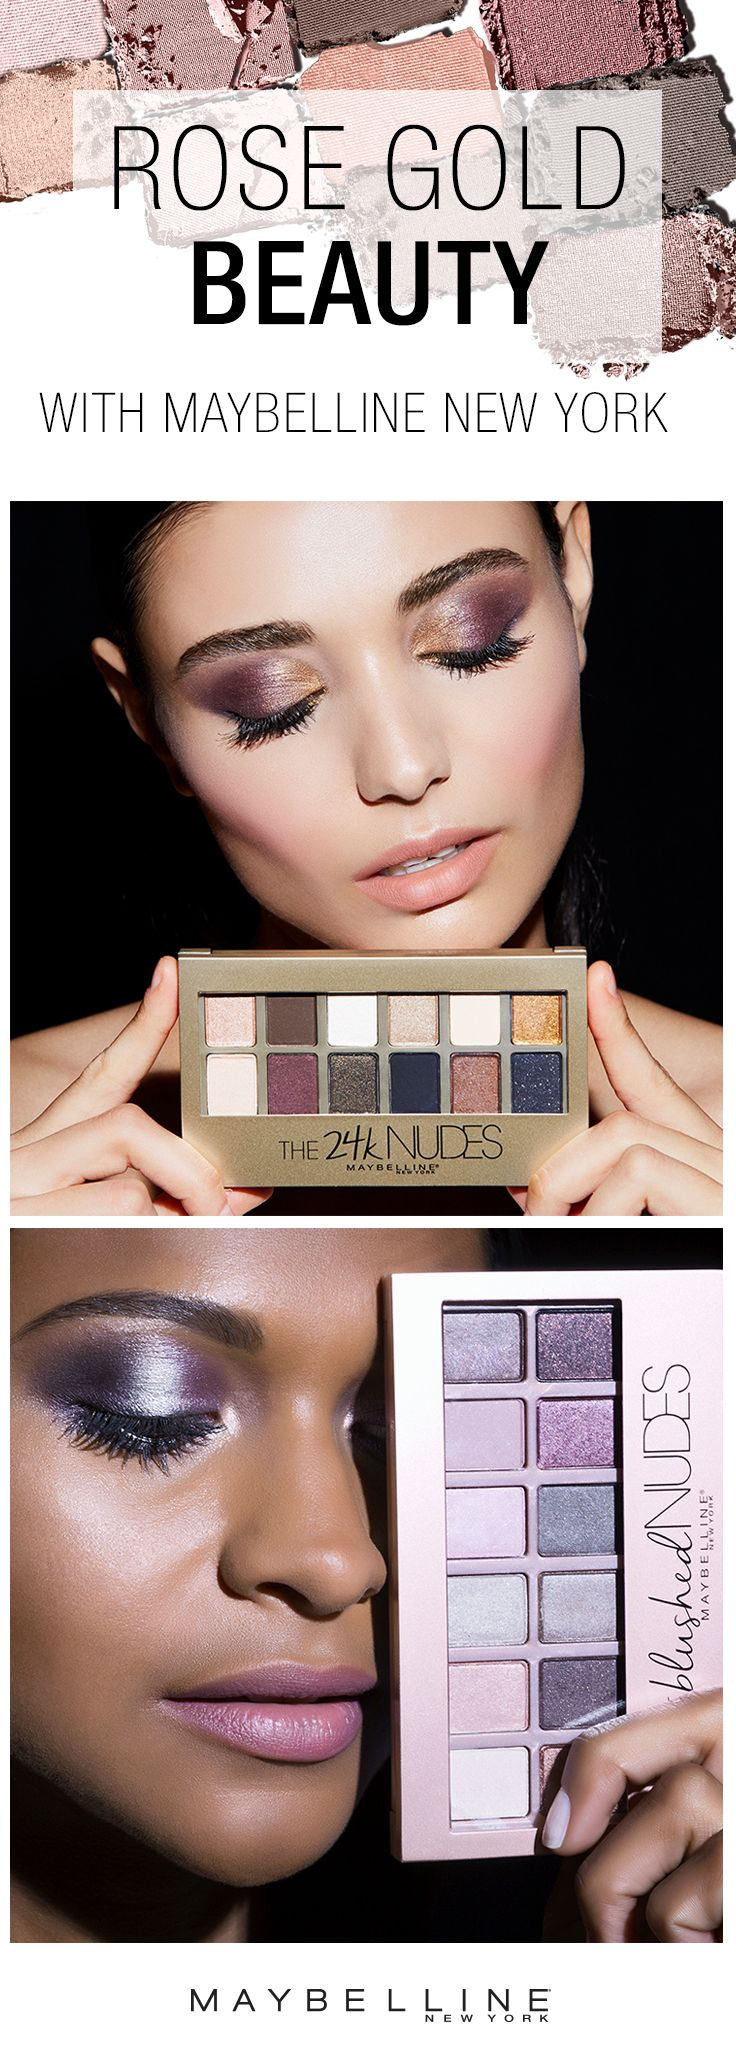 One of our favorite spring beauty trends is a rose gold eye makeup look.  Get the look using our 24K Nudes Eyshadow Palette or our Blushed Nudes Eyeshadow Palette.  Both feature shimmer and matte shades to create your perfect eyeshadow look in one convenient palette. Click through to shop our eyeshadow palettes!